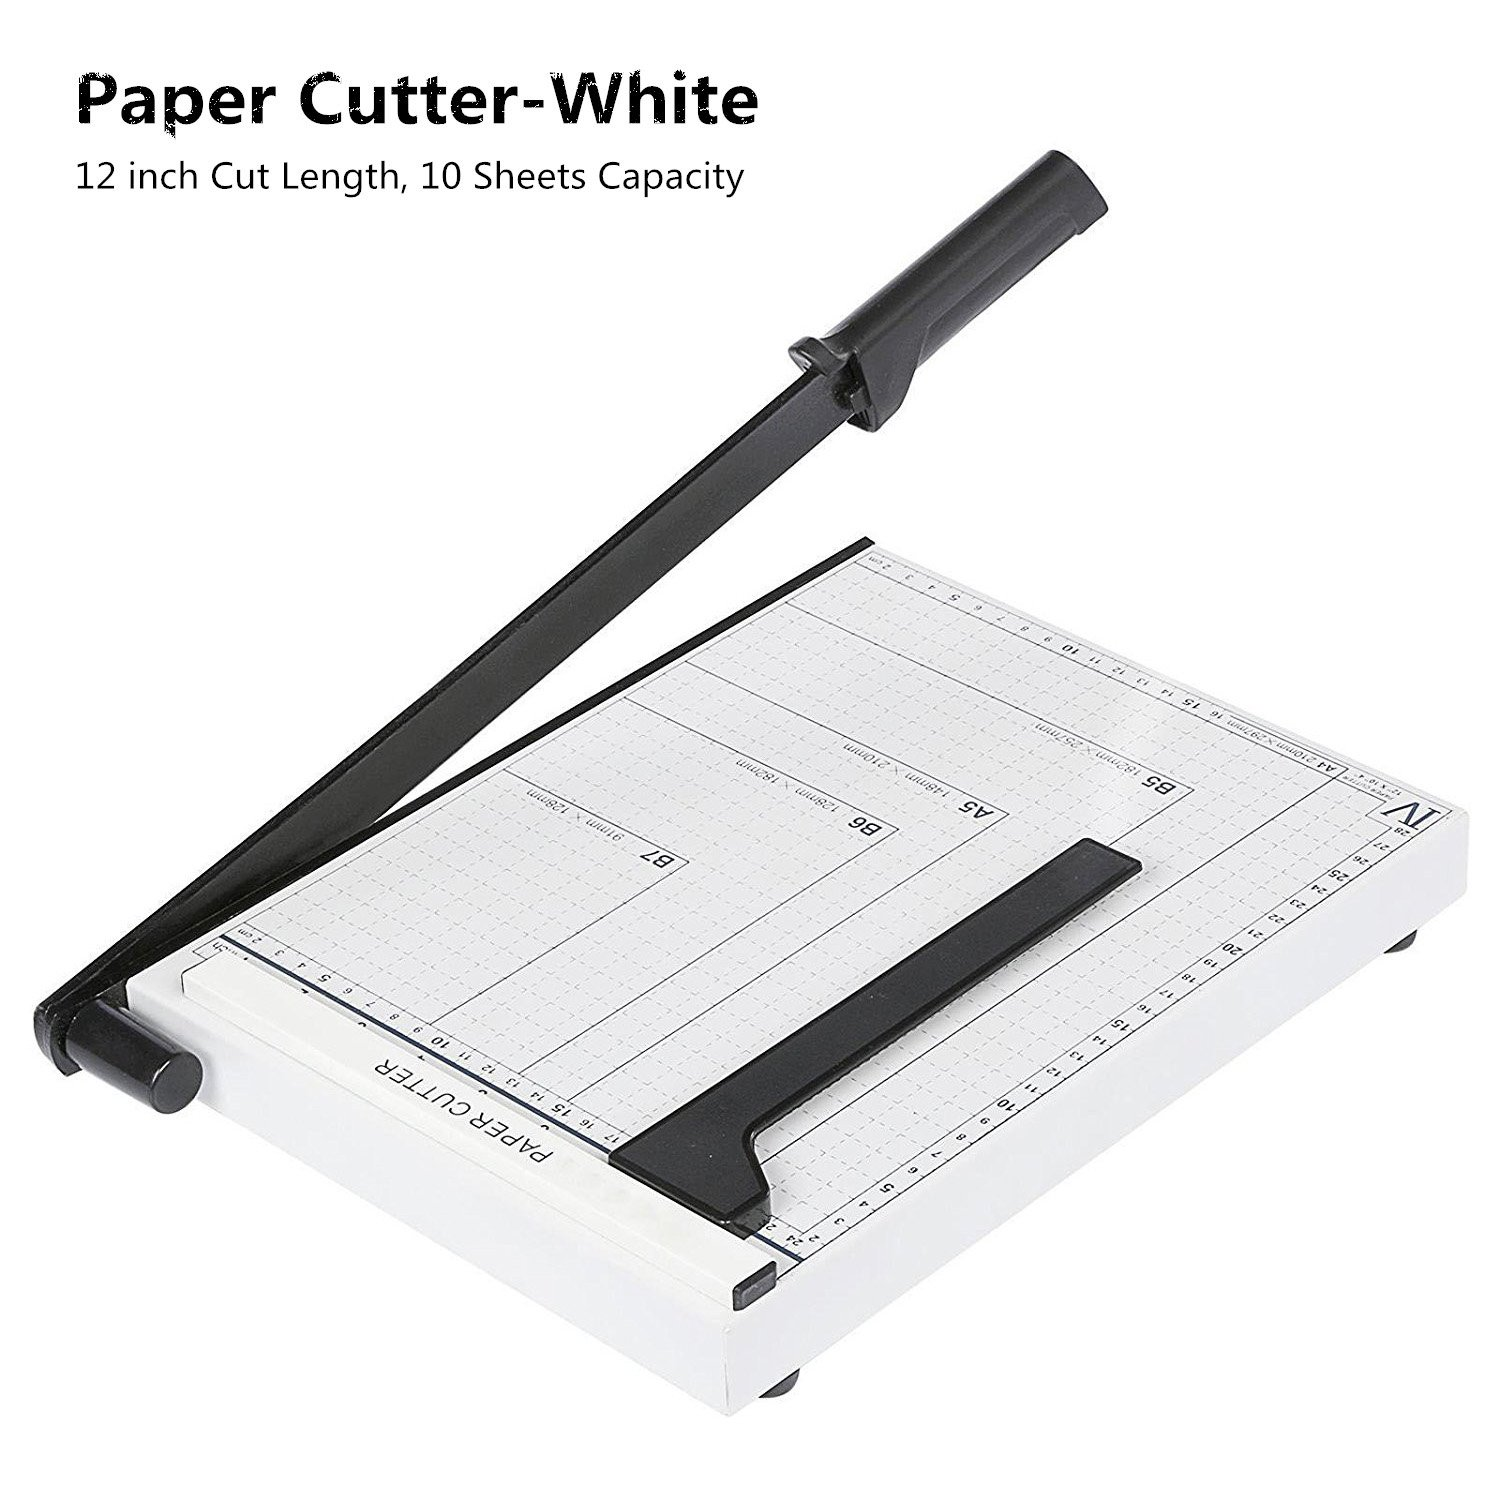 Paper Trimmer / Cutter Guillotine, Heavy Duty White Photo Paper Cutter Machine, 12 inch Cut Length,10 Sheets Capacity -US STOCK (A4-White-300X250cm) Evokem